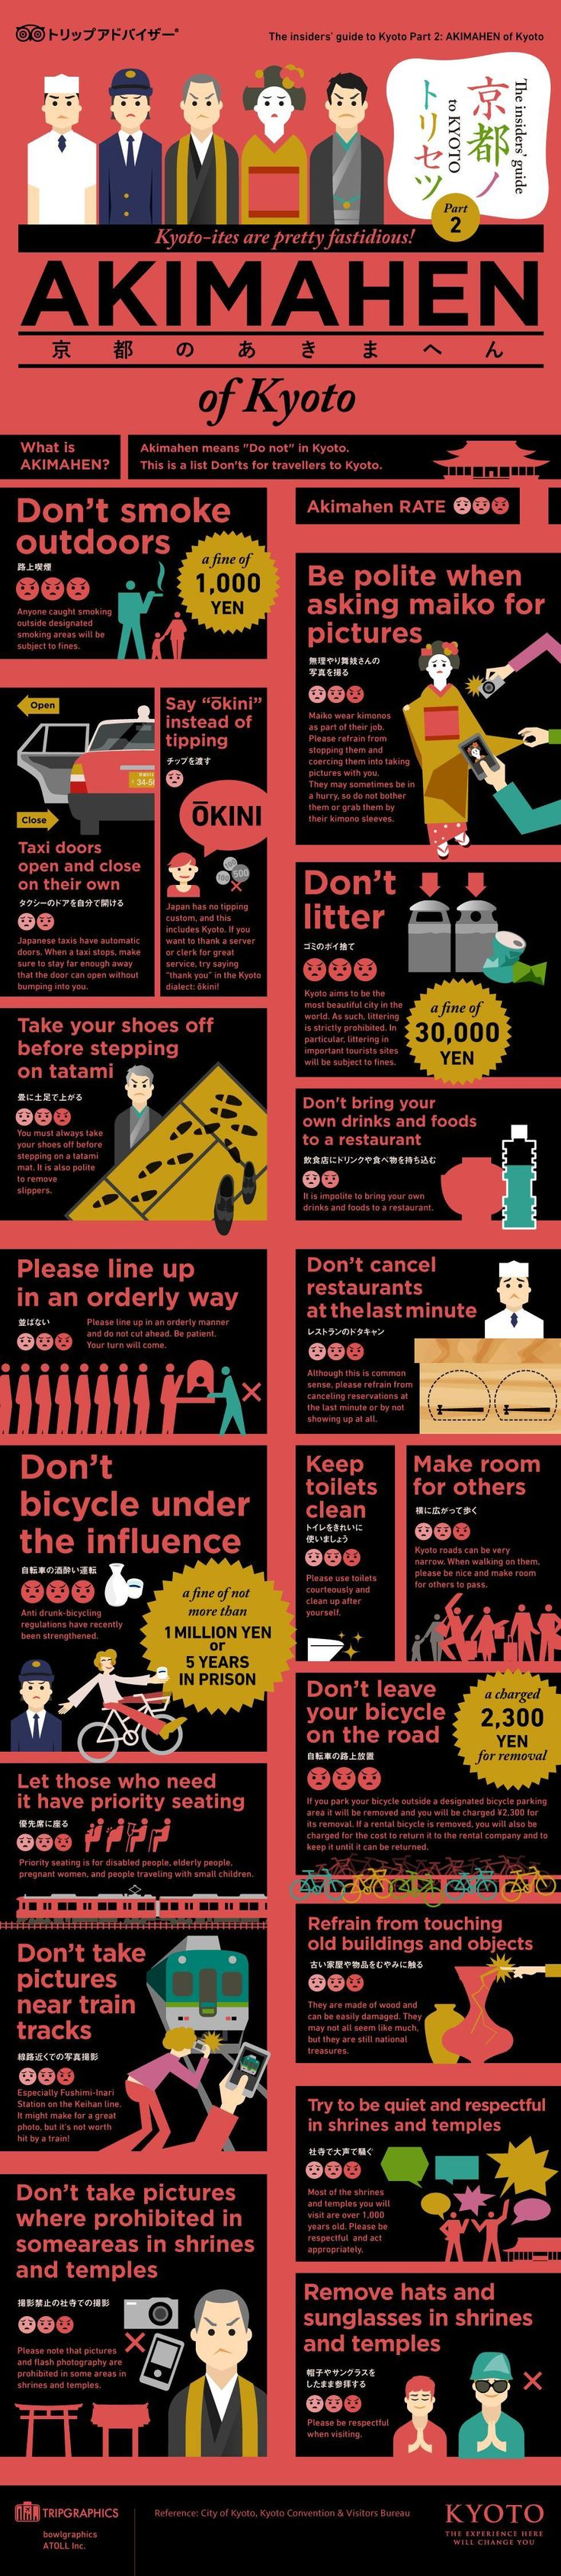 Japan Makes Handy Etiquette Guides For Tourists, Includes Tips On Toilet Usage - DesignTAXI.com